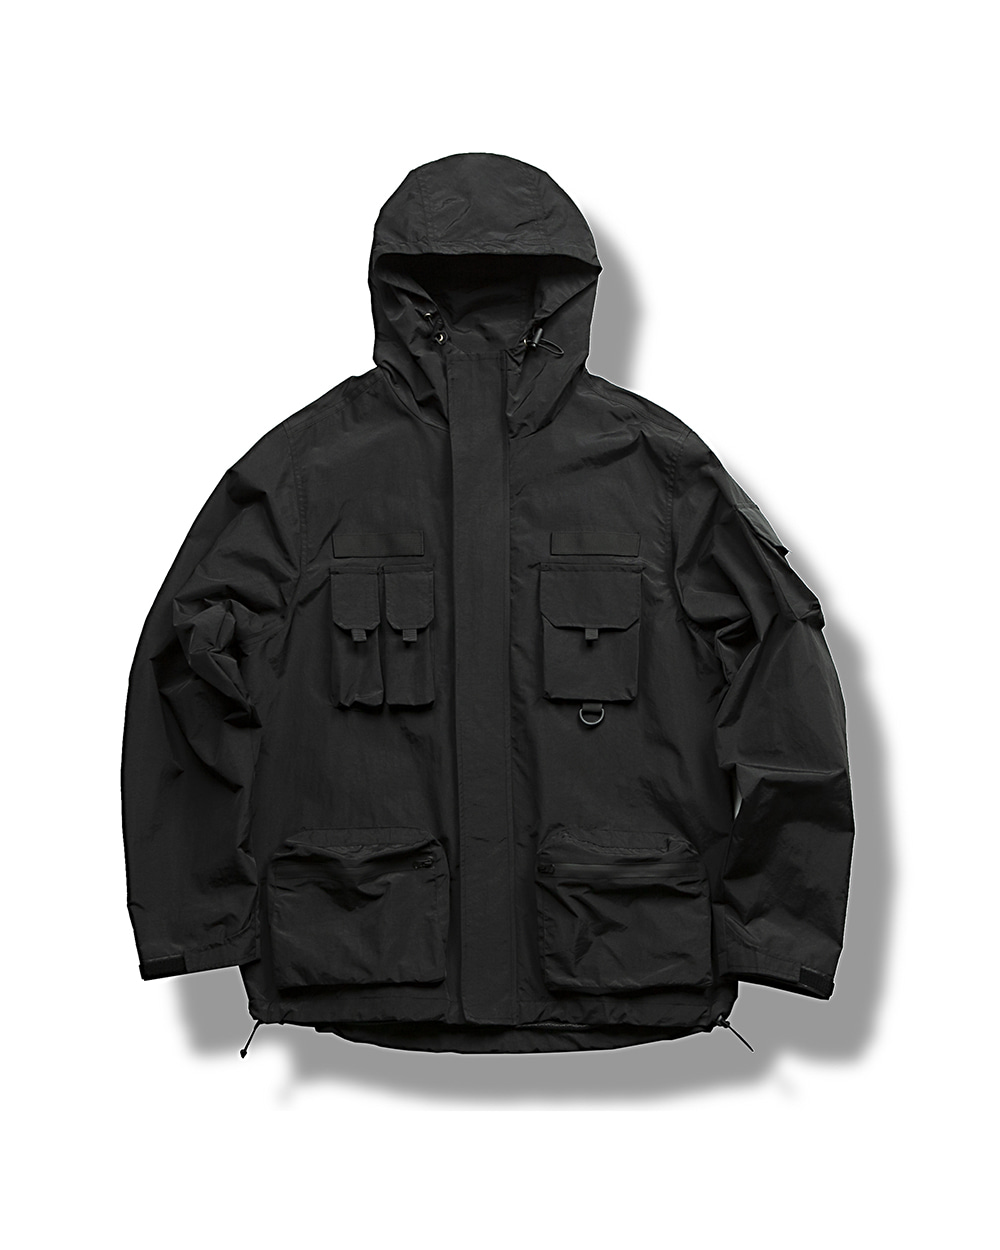 (VLADIMIR) WATERPROOF WIND JACKET BLACK